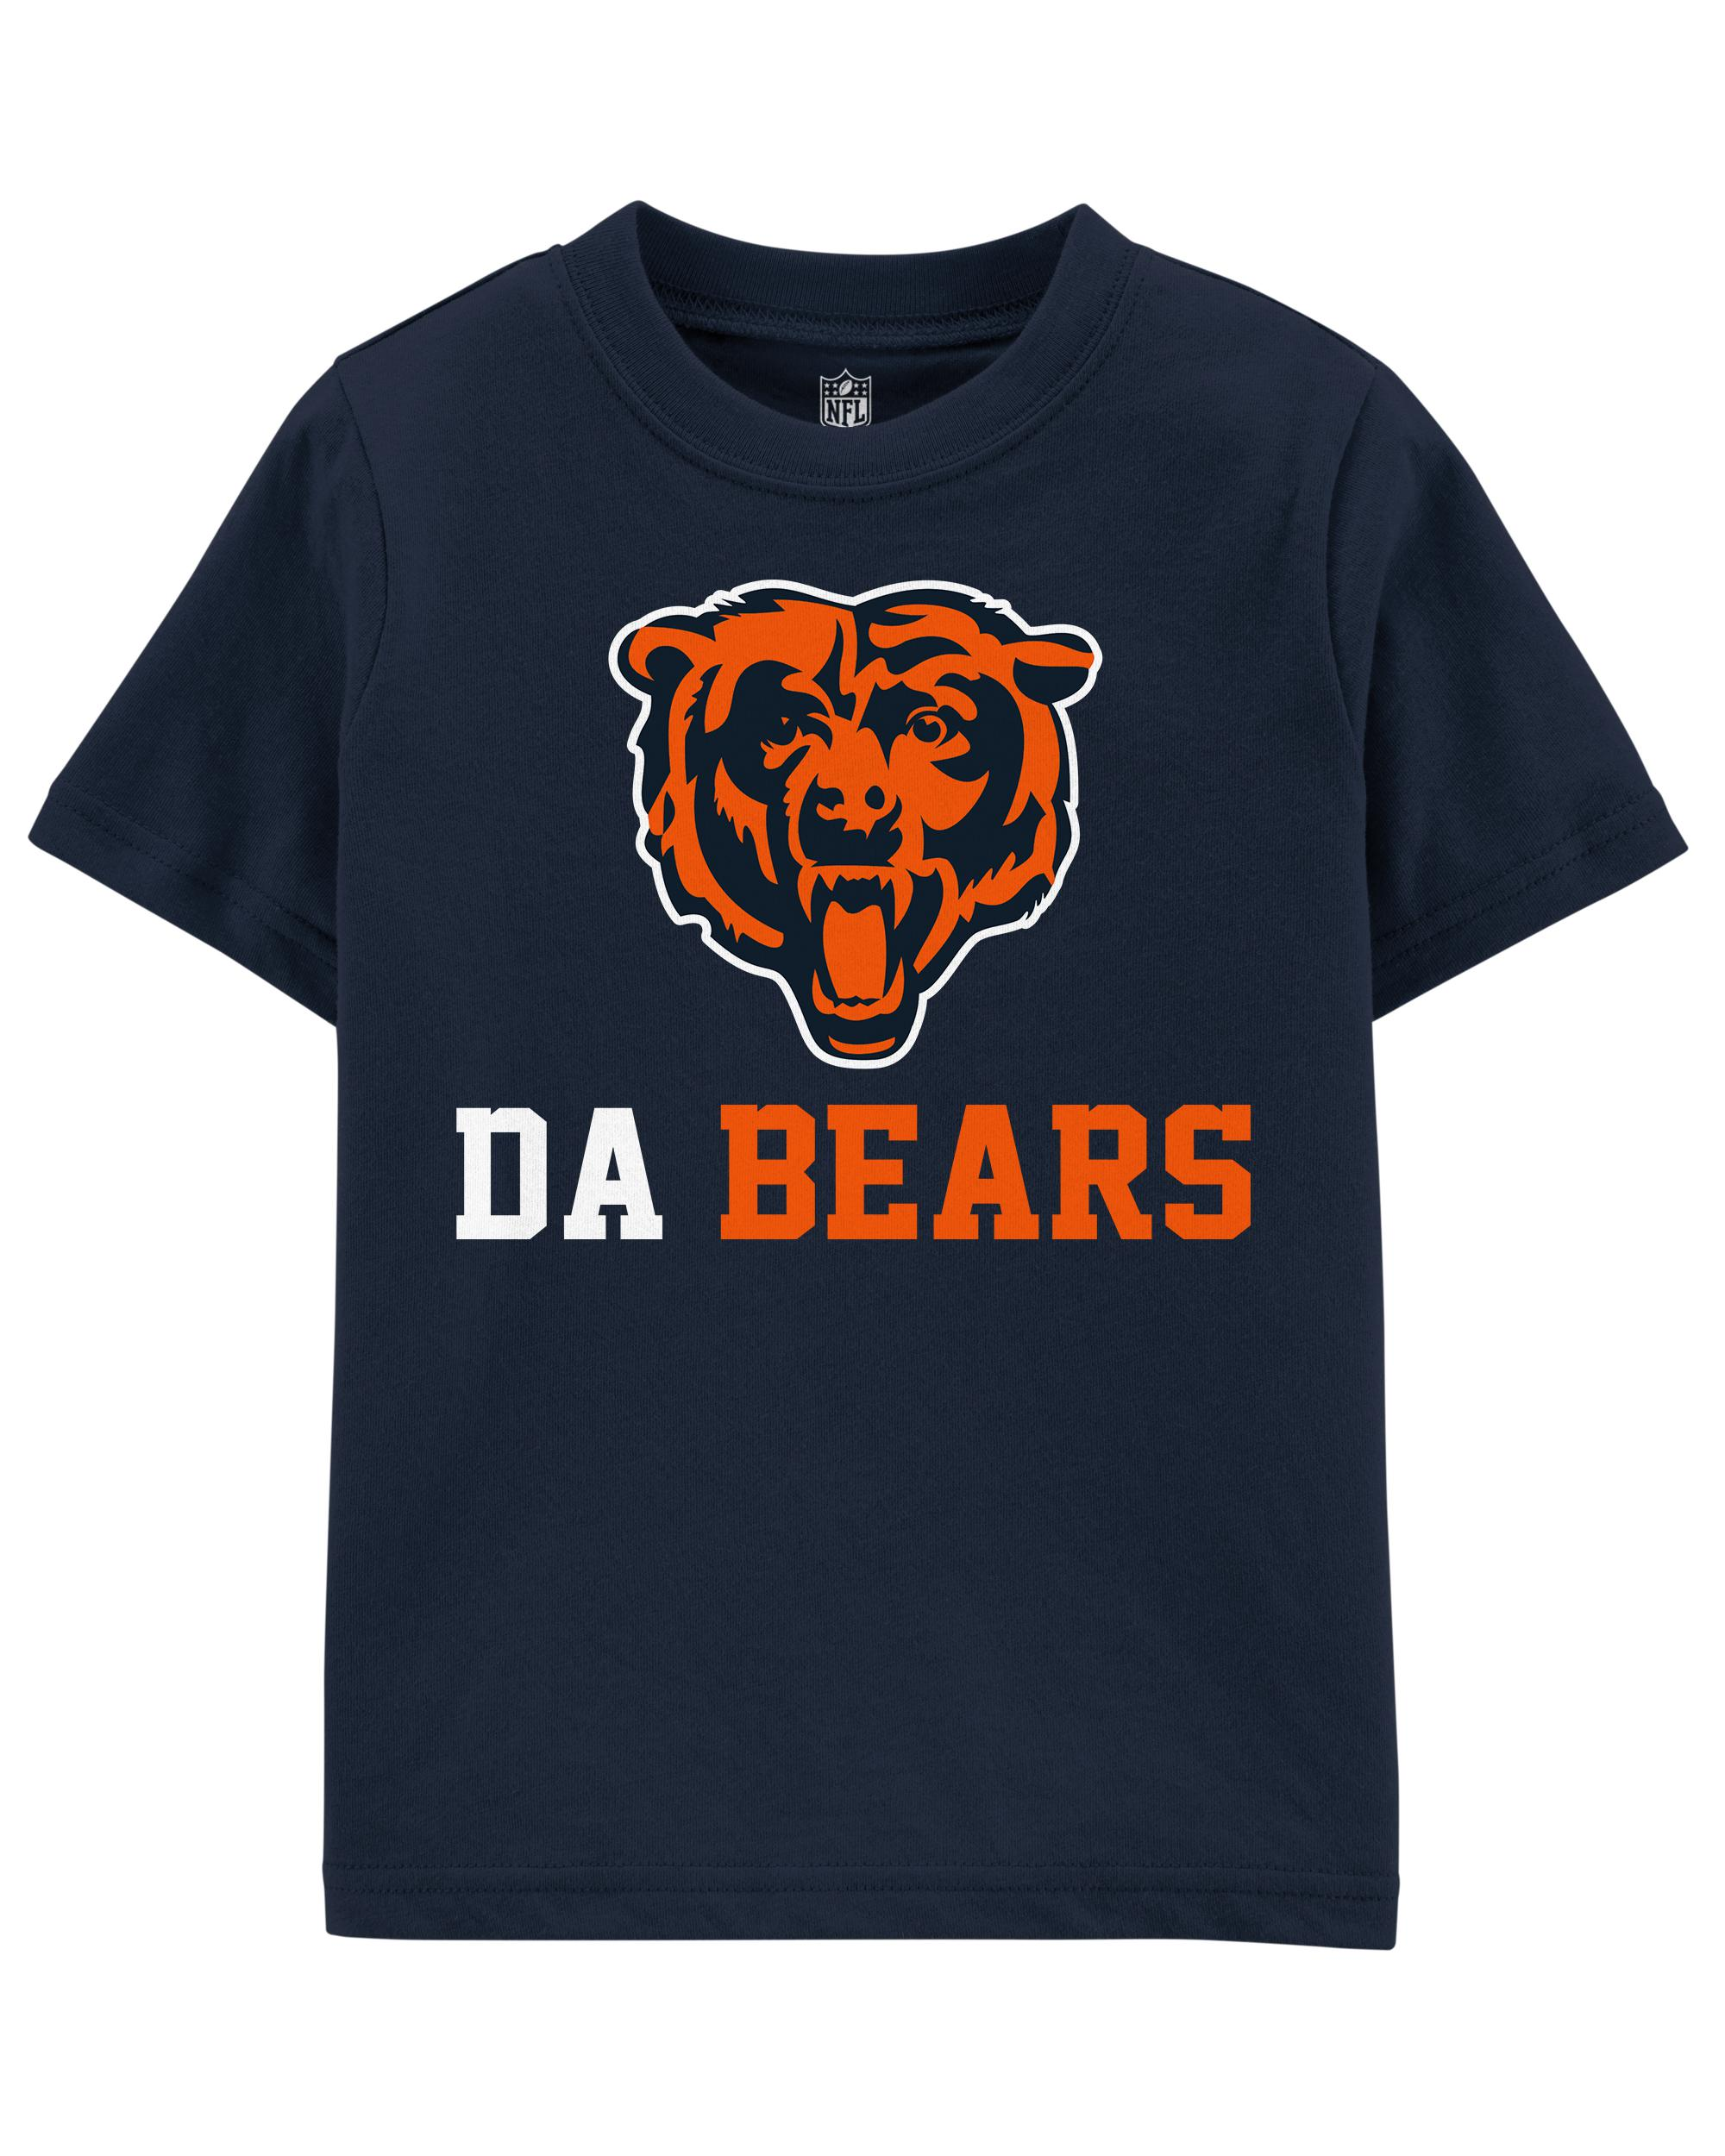 new product d261d 7b8f9 NFL Chicago Bears Tee | carters.com